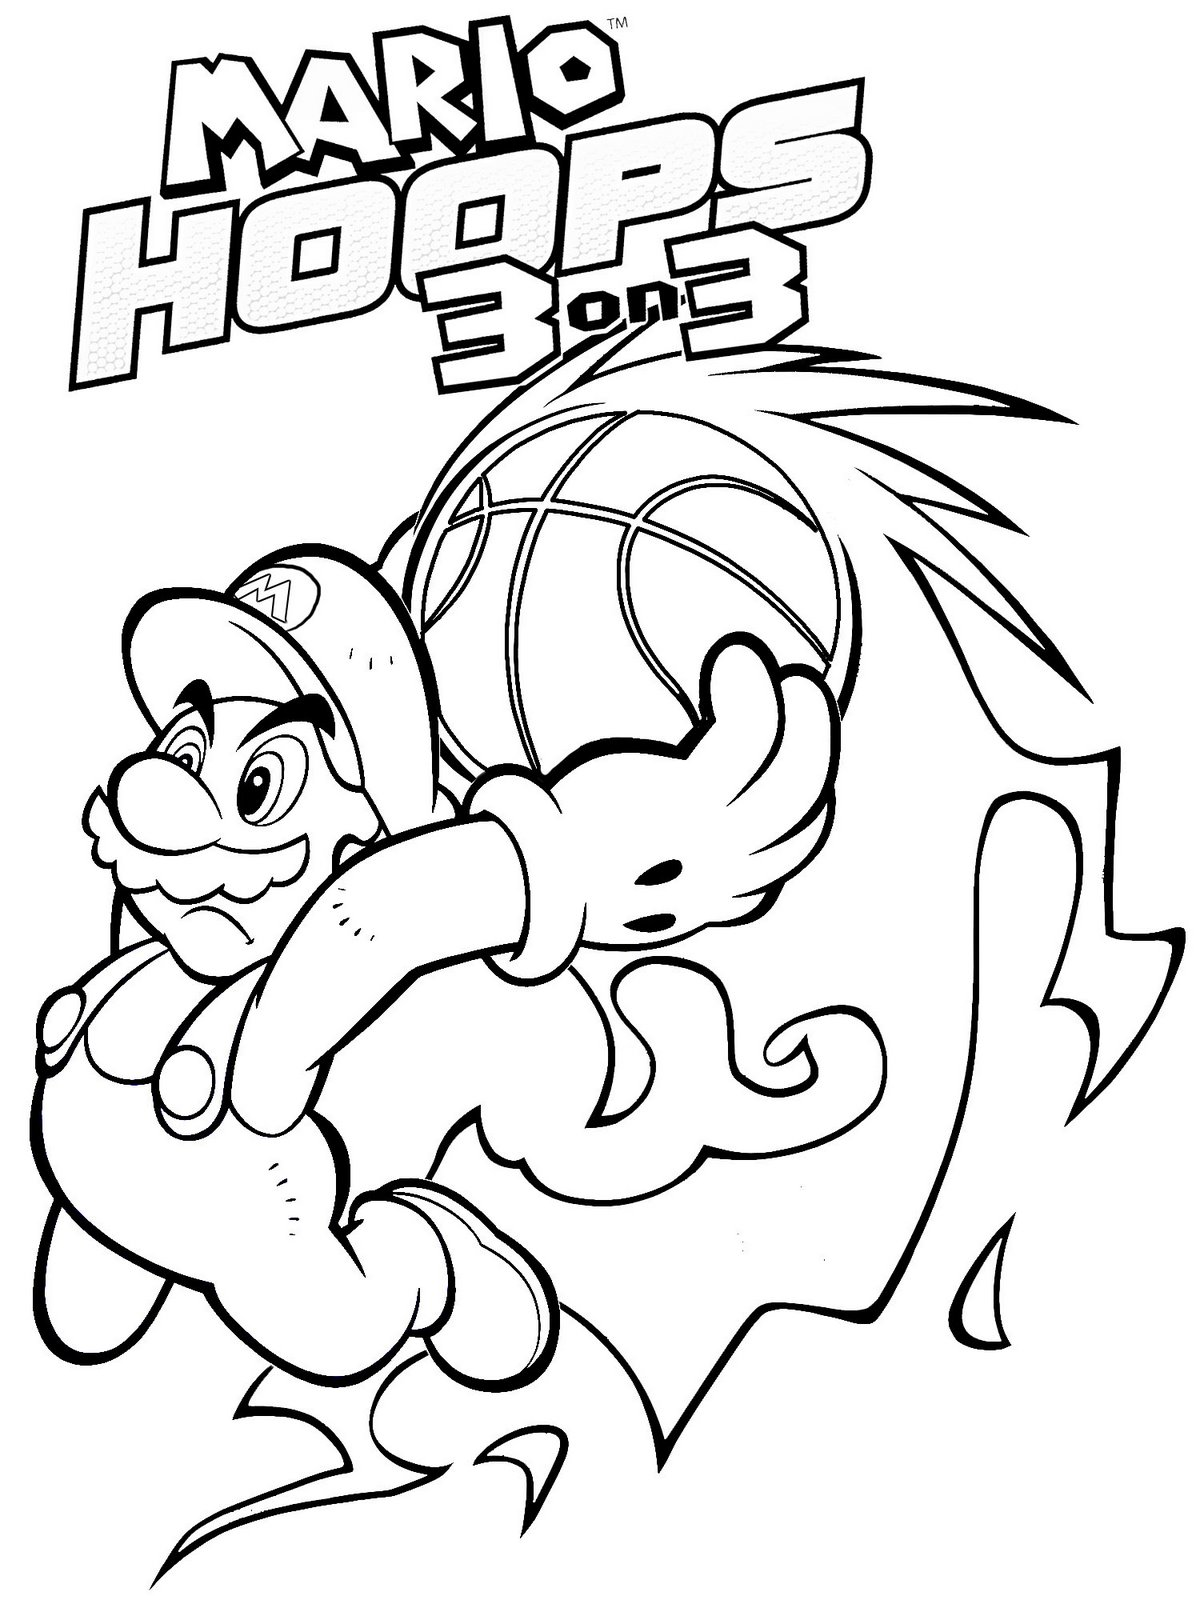 mario bros printable coloring pages mario coloring pages printable that are gorgeous hunter blog printable bros coloring pages mario